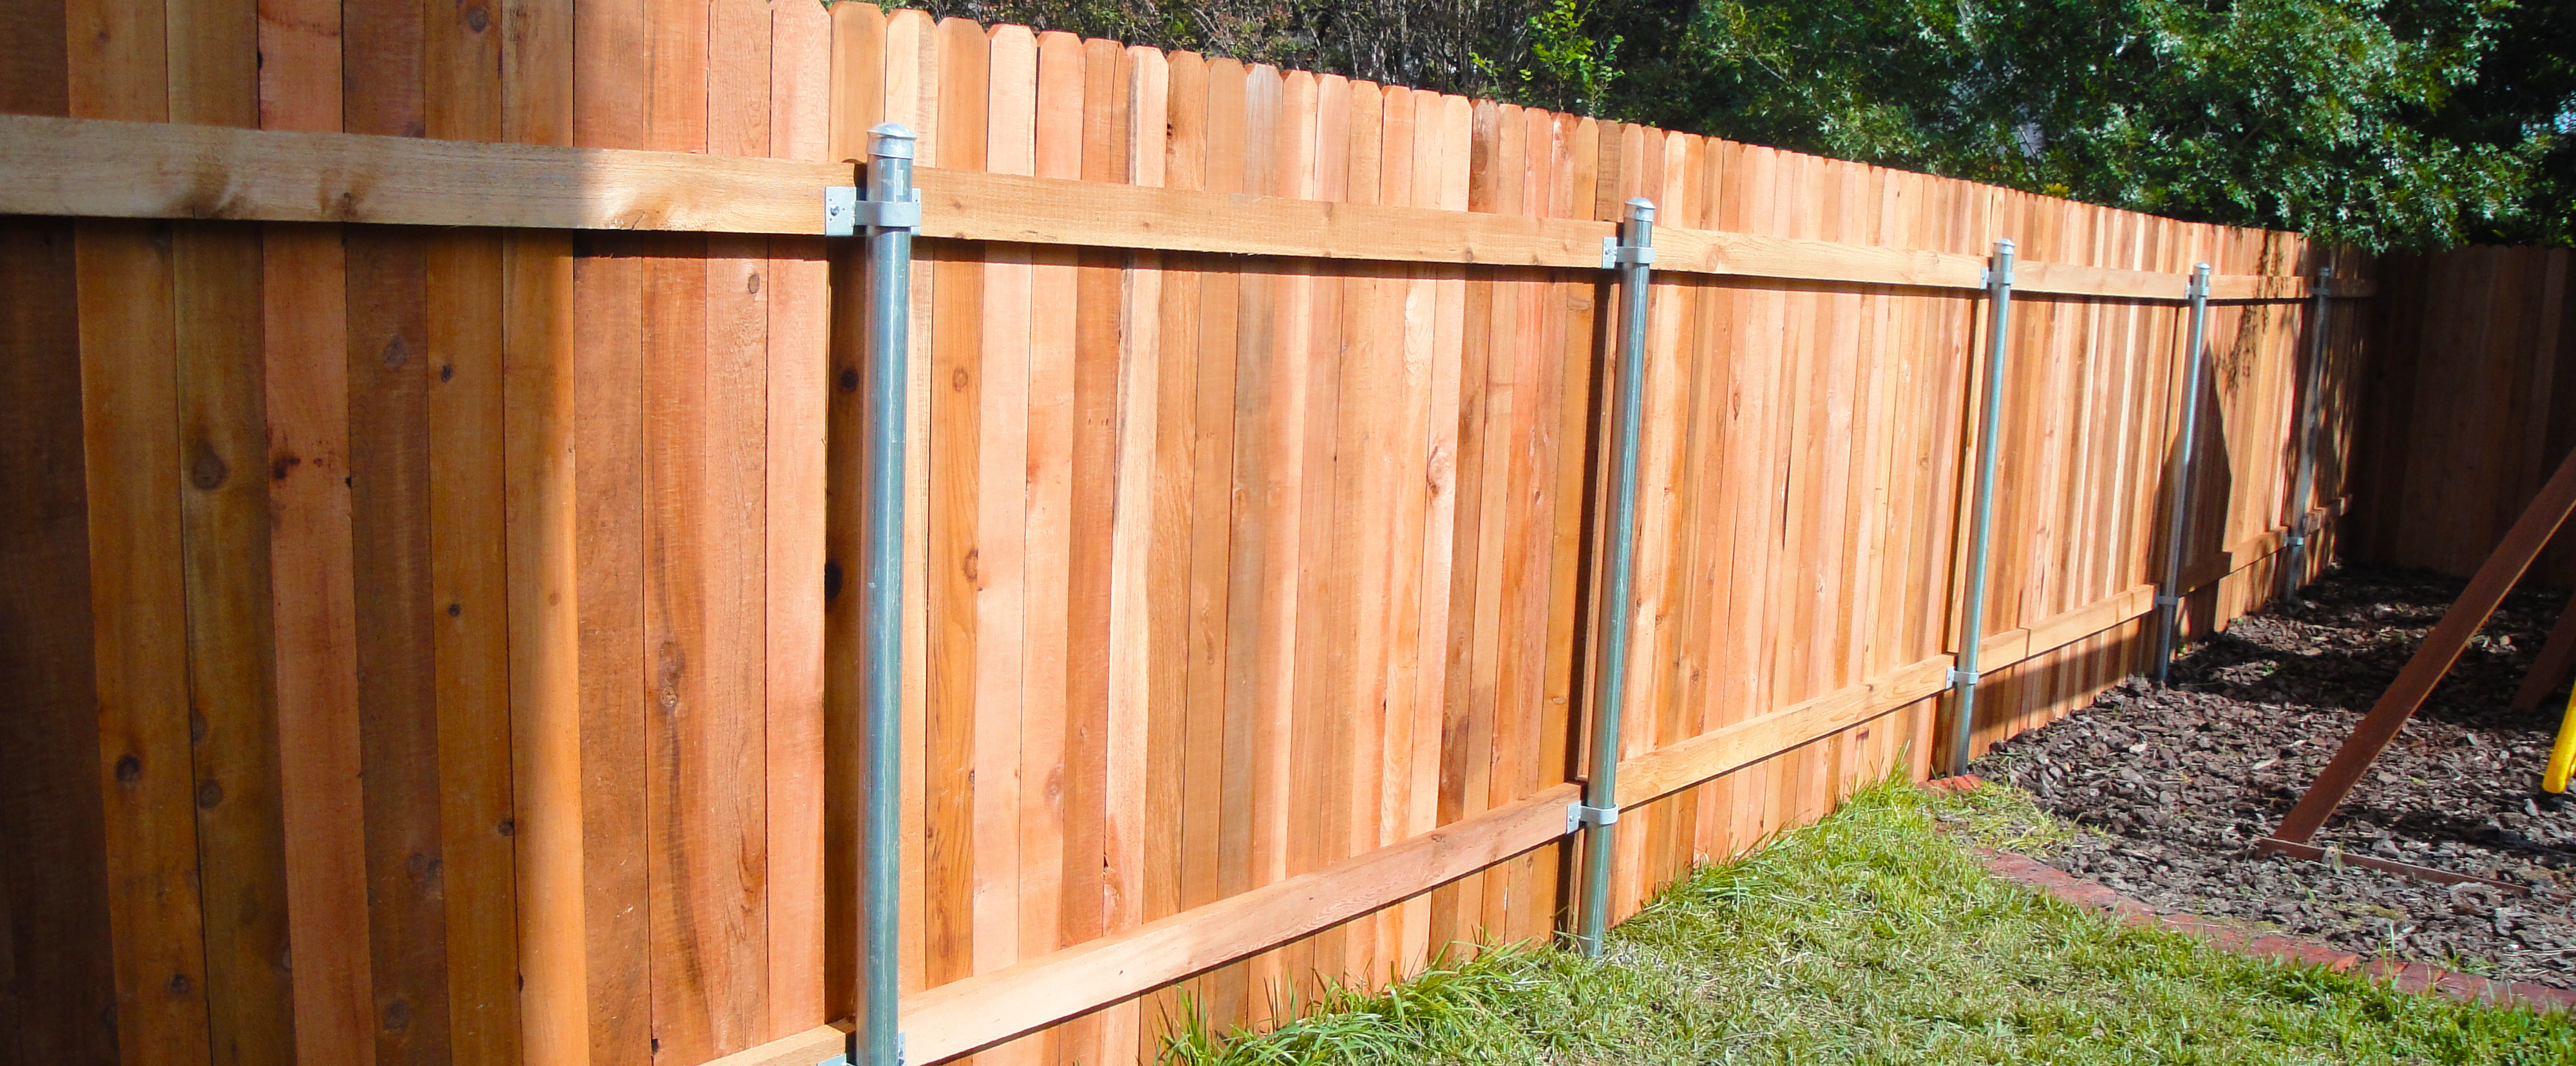 Wood privacy fences austin tx ranchers fencing for Fences privacy